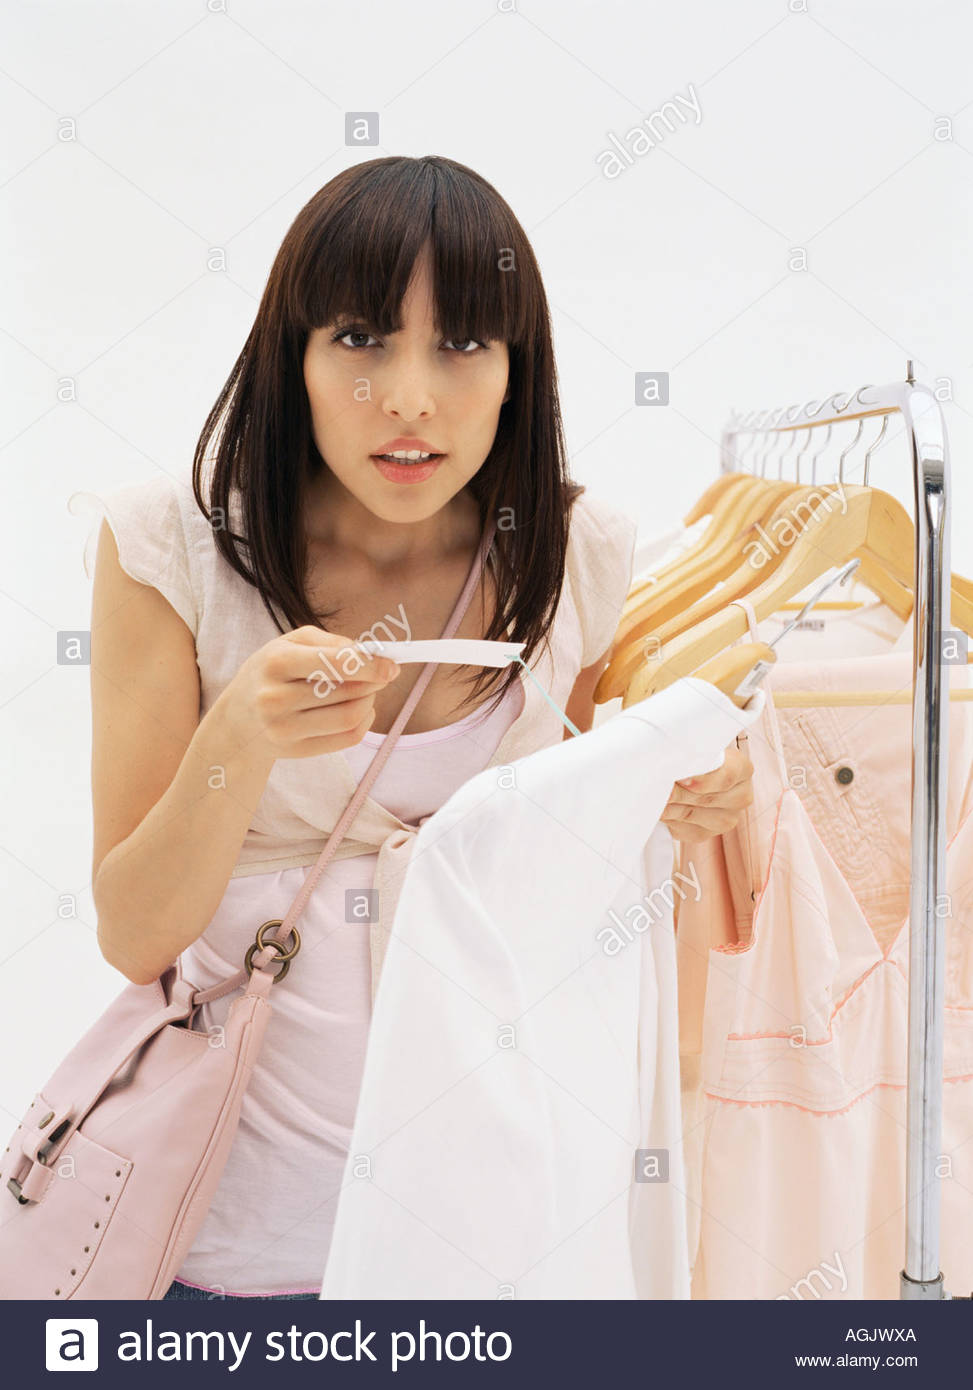 Woman holding price label - Stock Image